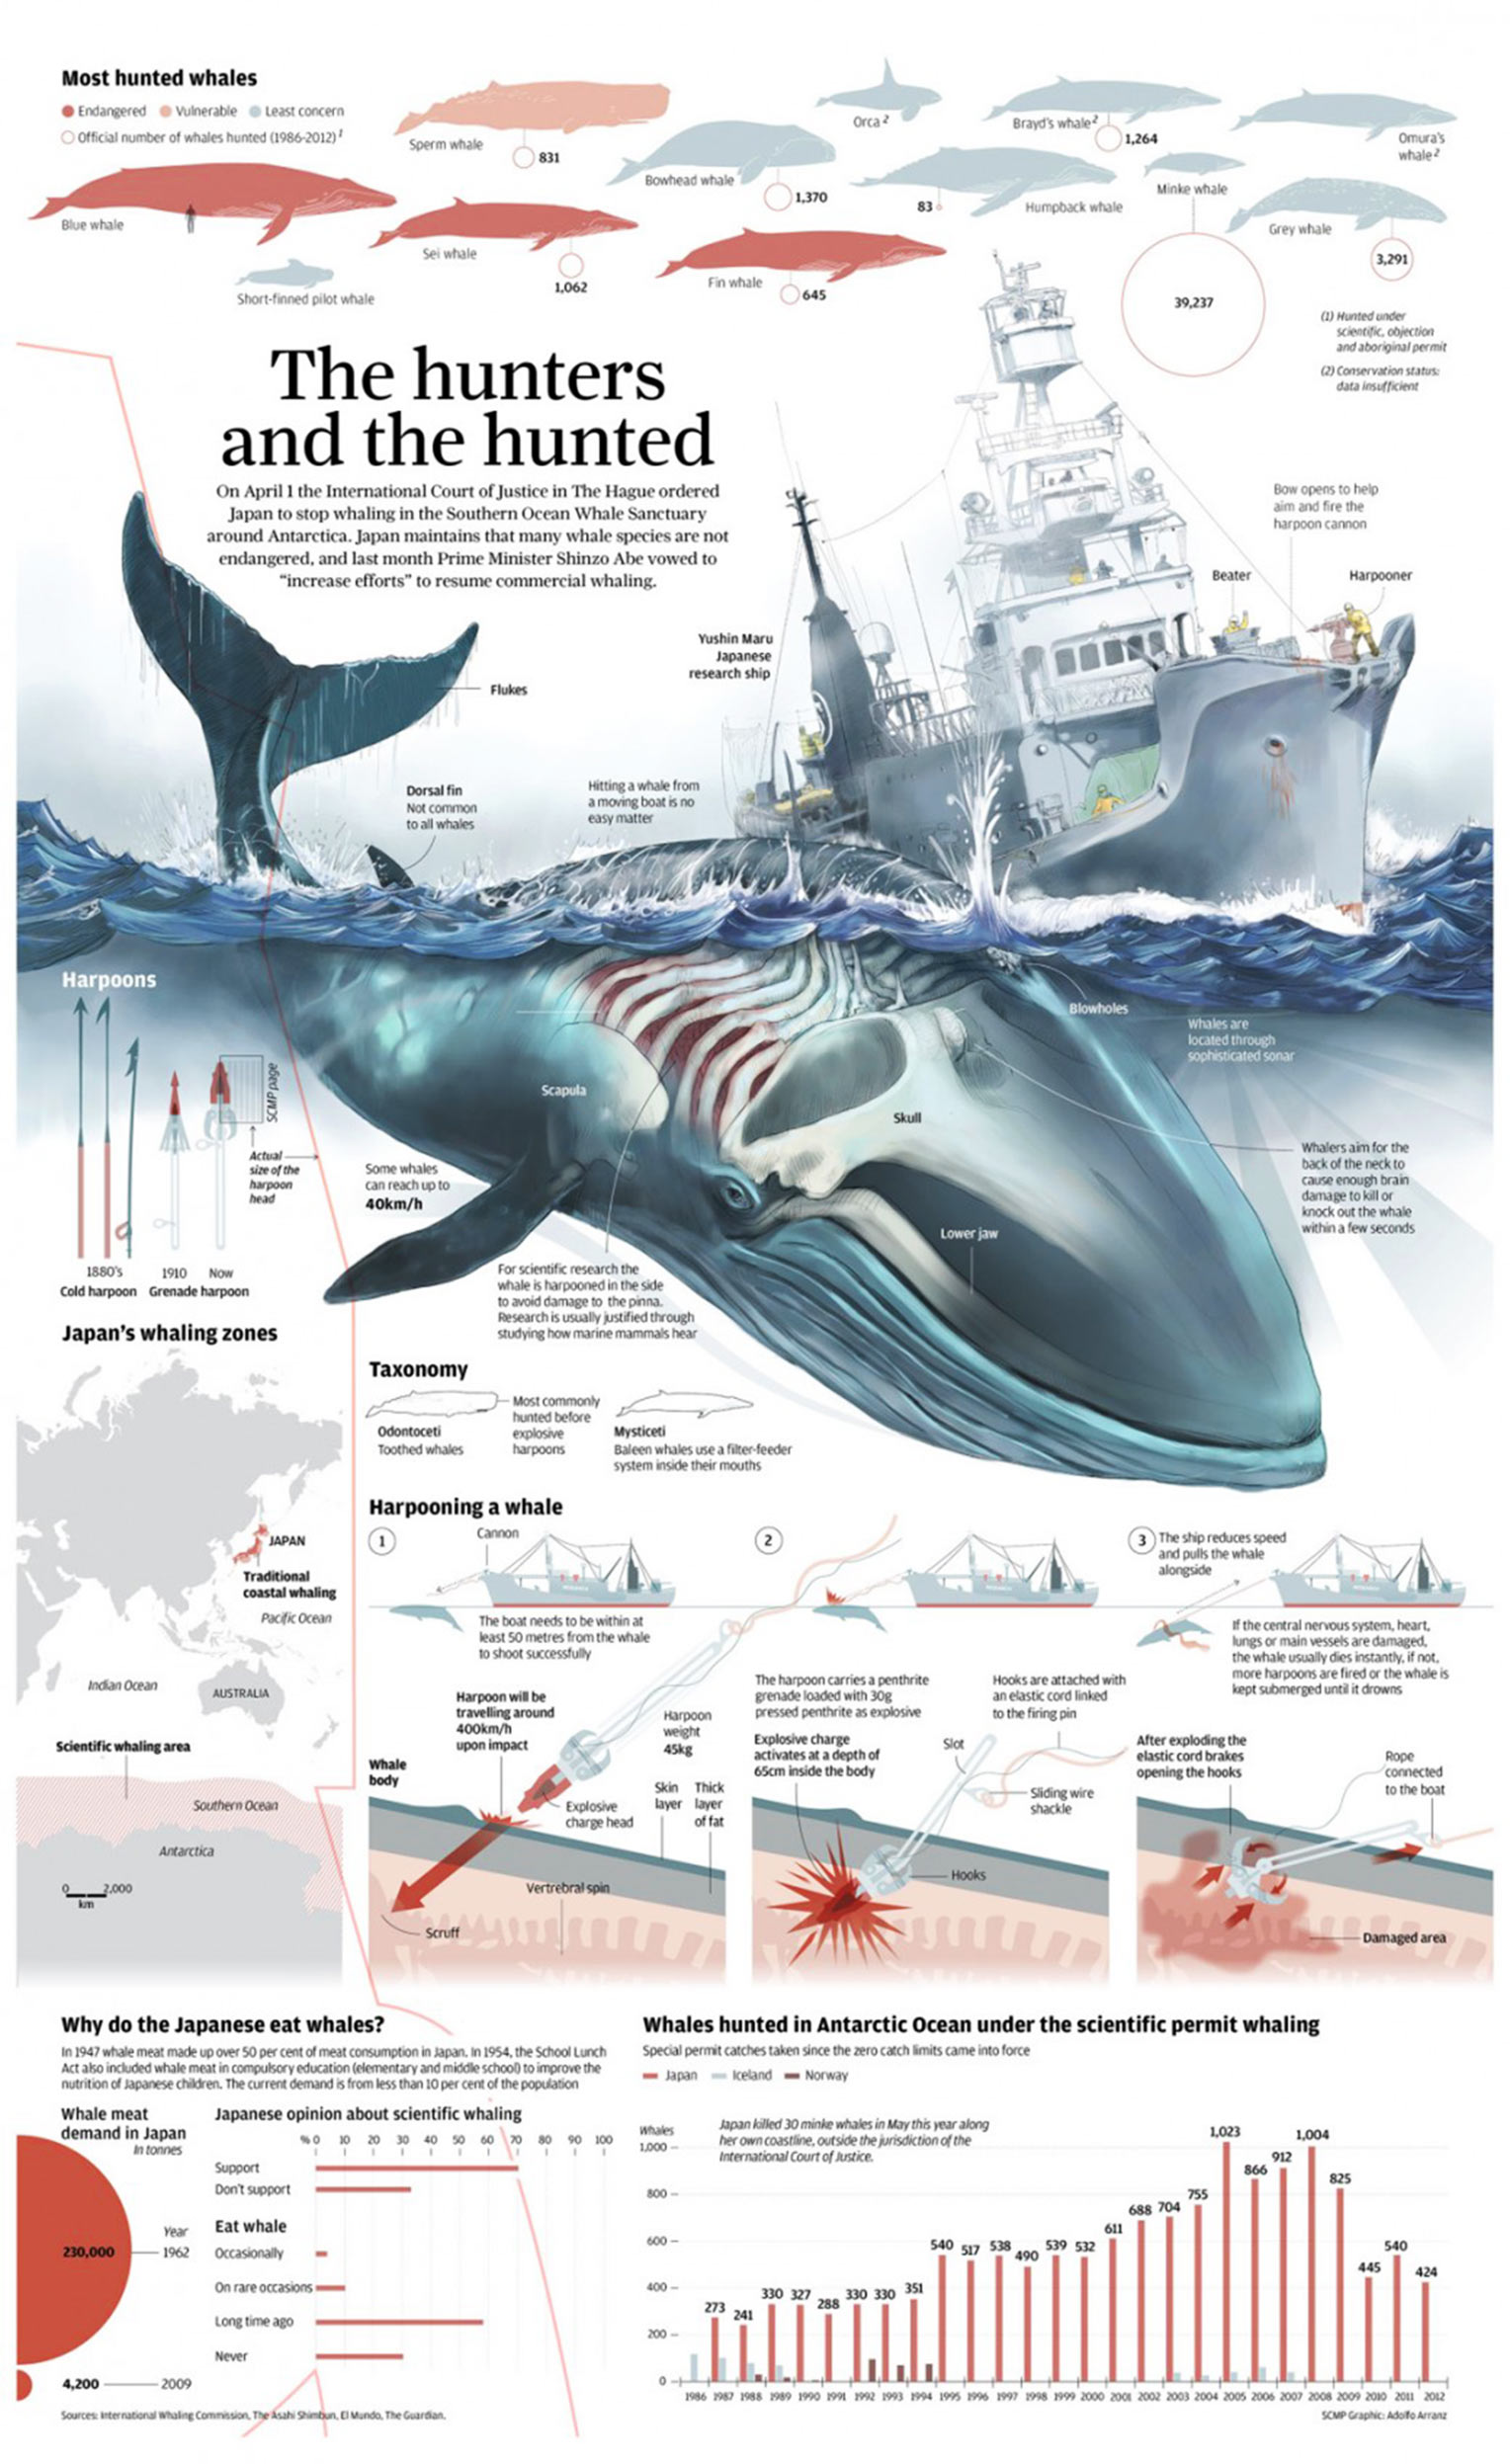 Whale Poaching in Japan [Infographic]